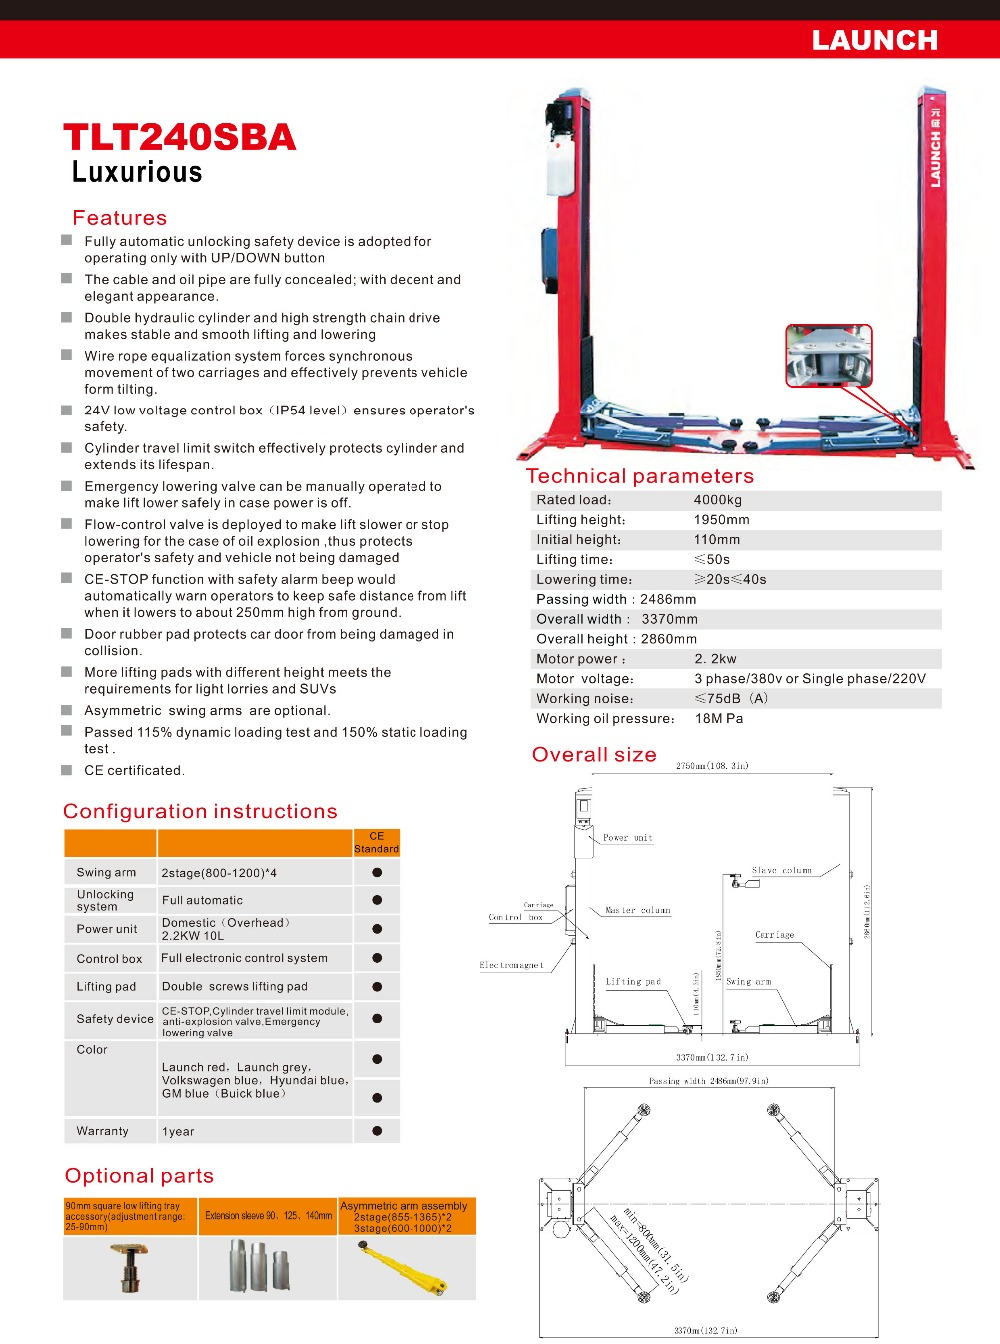 TLT240SBA Launch Lift's Catalogue-10